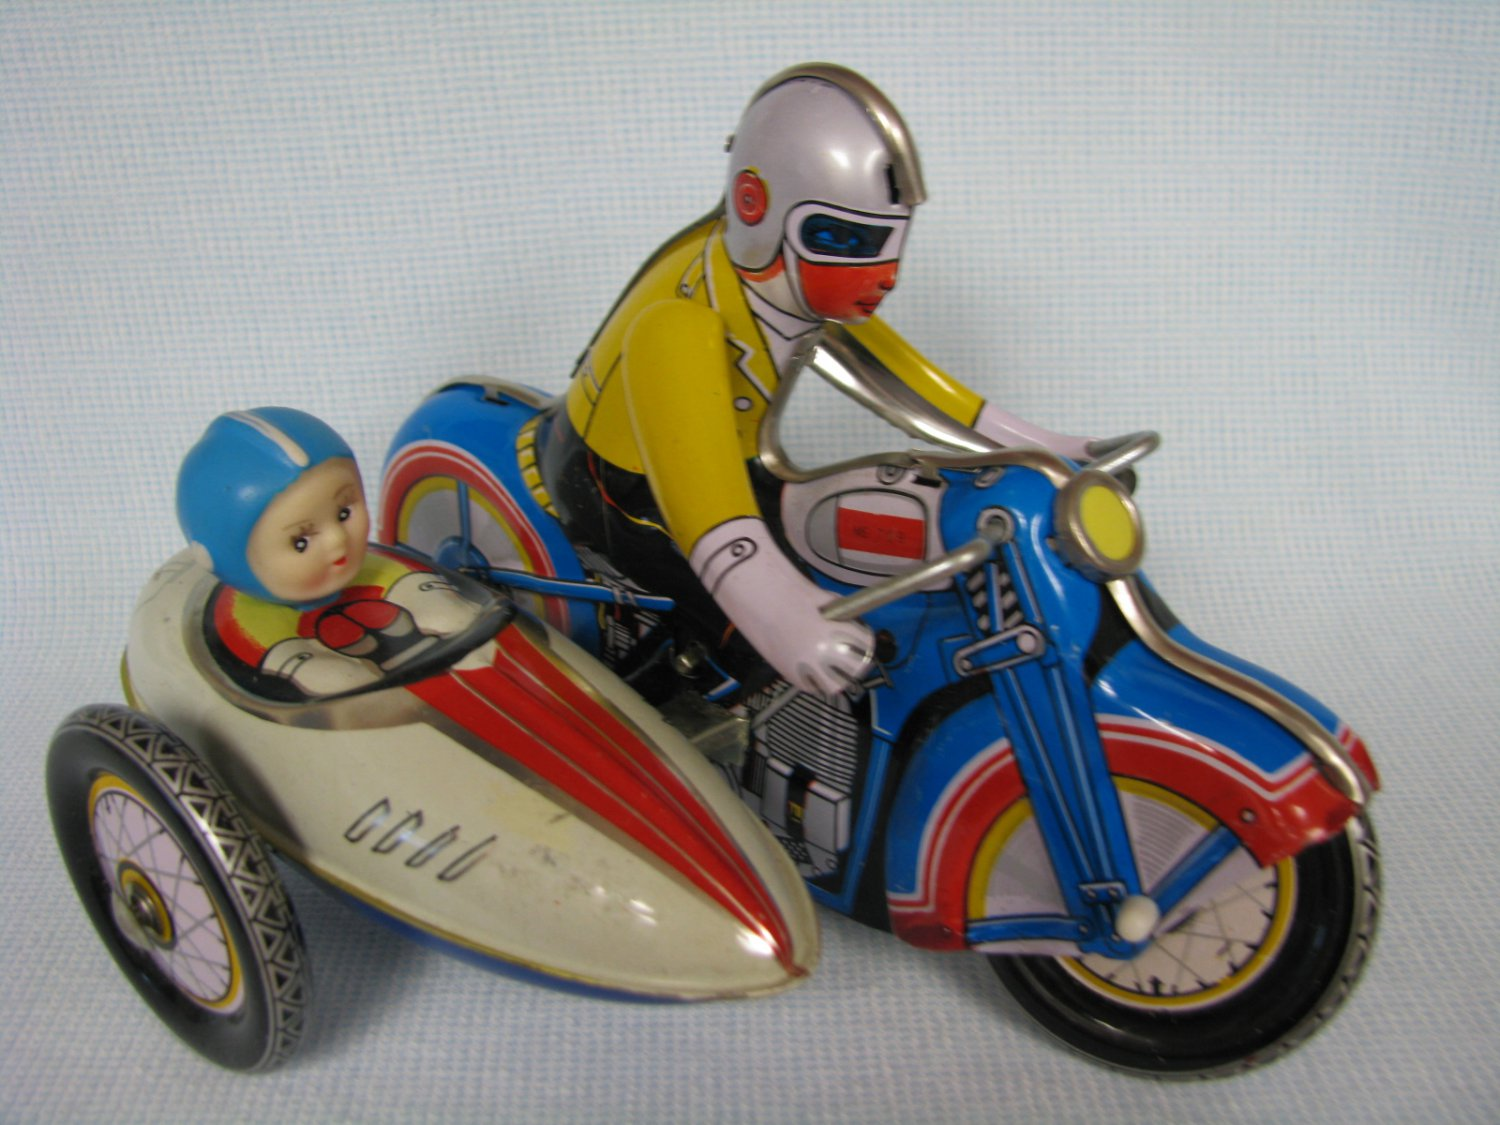 Tin Wind Up Motorcycle With Sidecar